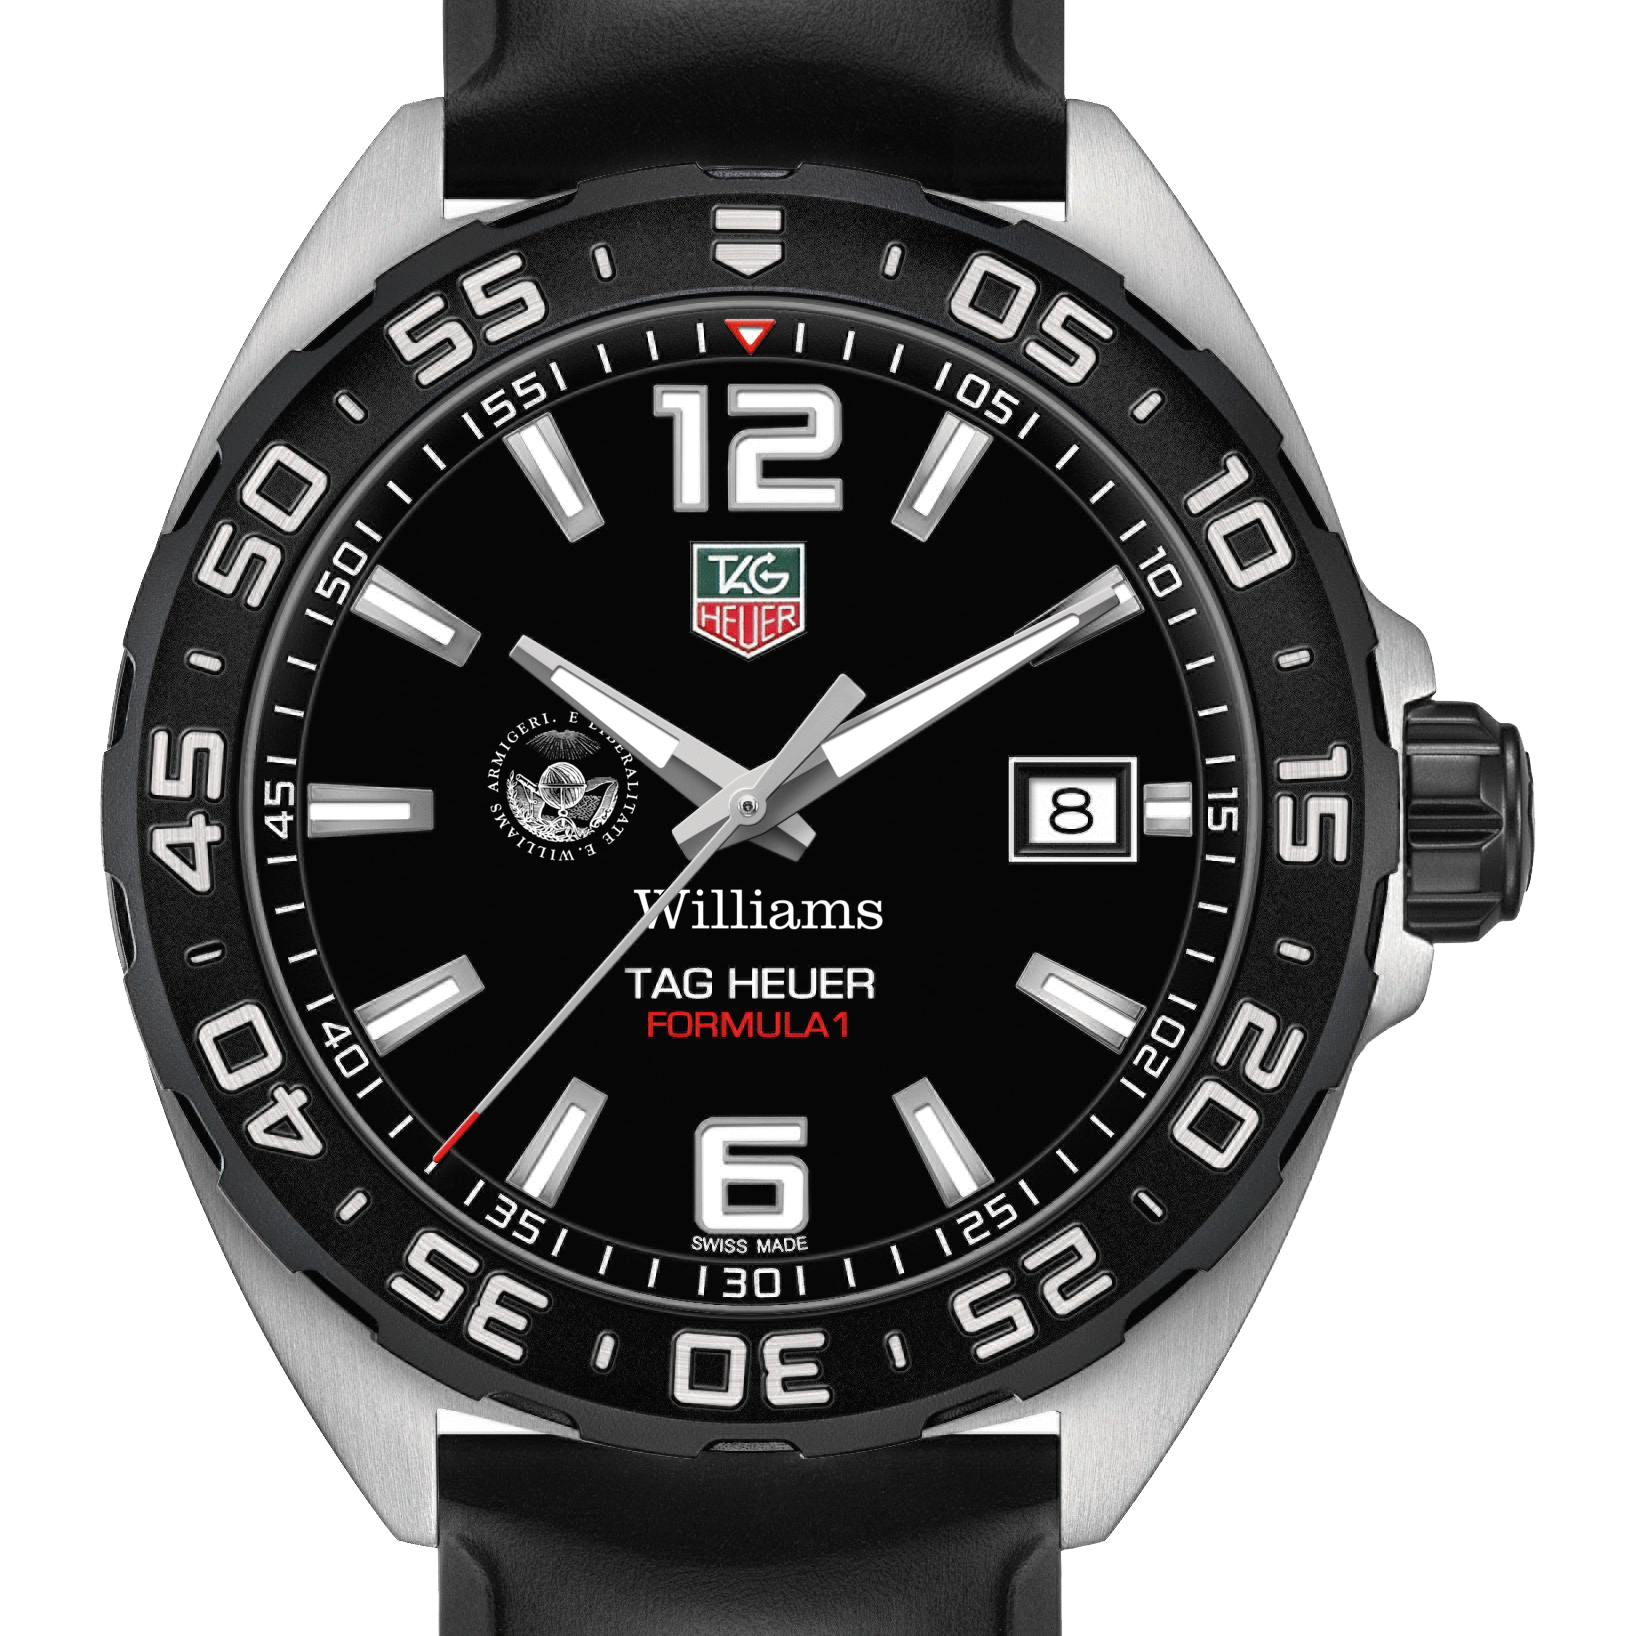 Williams College Men's TAG Heuer Formula 1 with Black Dial - Image 1